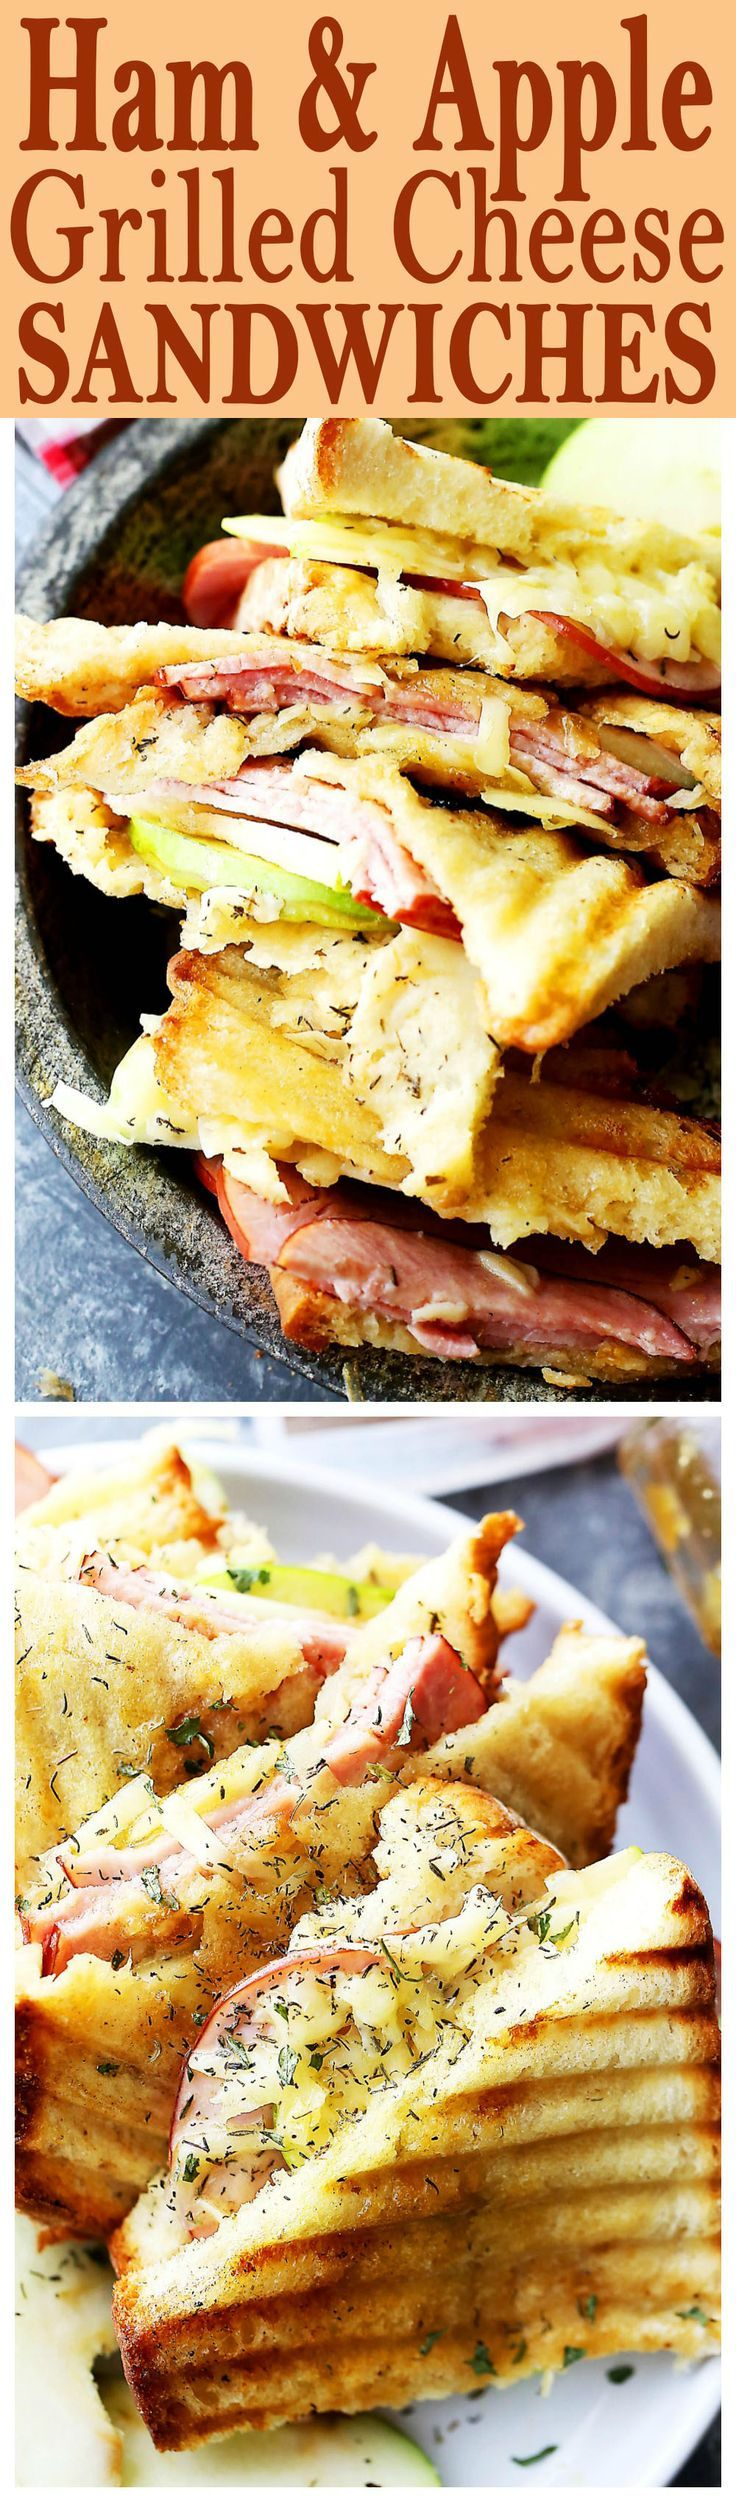 Ham and Apple Grilled Cheese Sandwich - Transform the classic grilled cheese sandwich with a perfect combination of flavors and textures including apples, ham, and gruyere cheese! #EatGoodCleanFun #ad